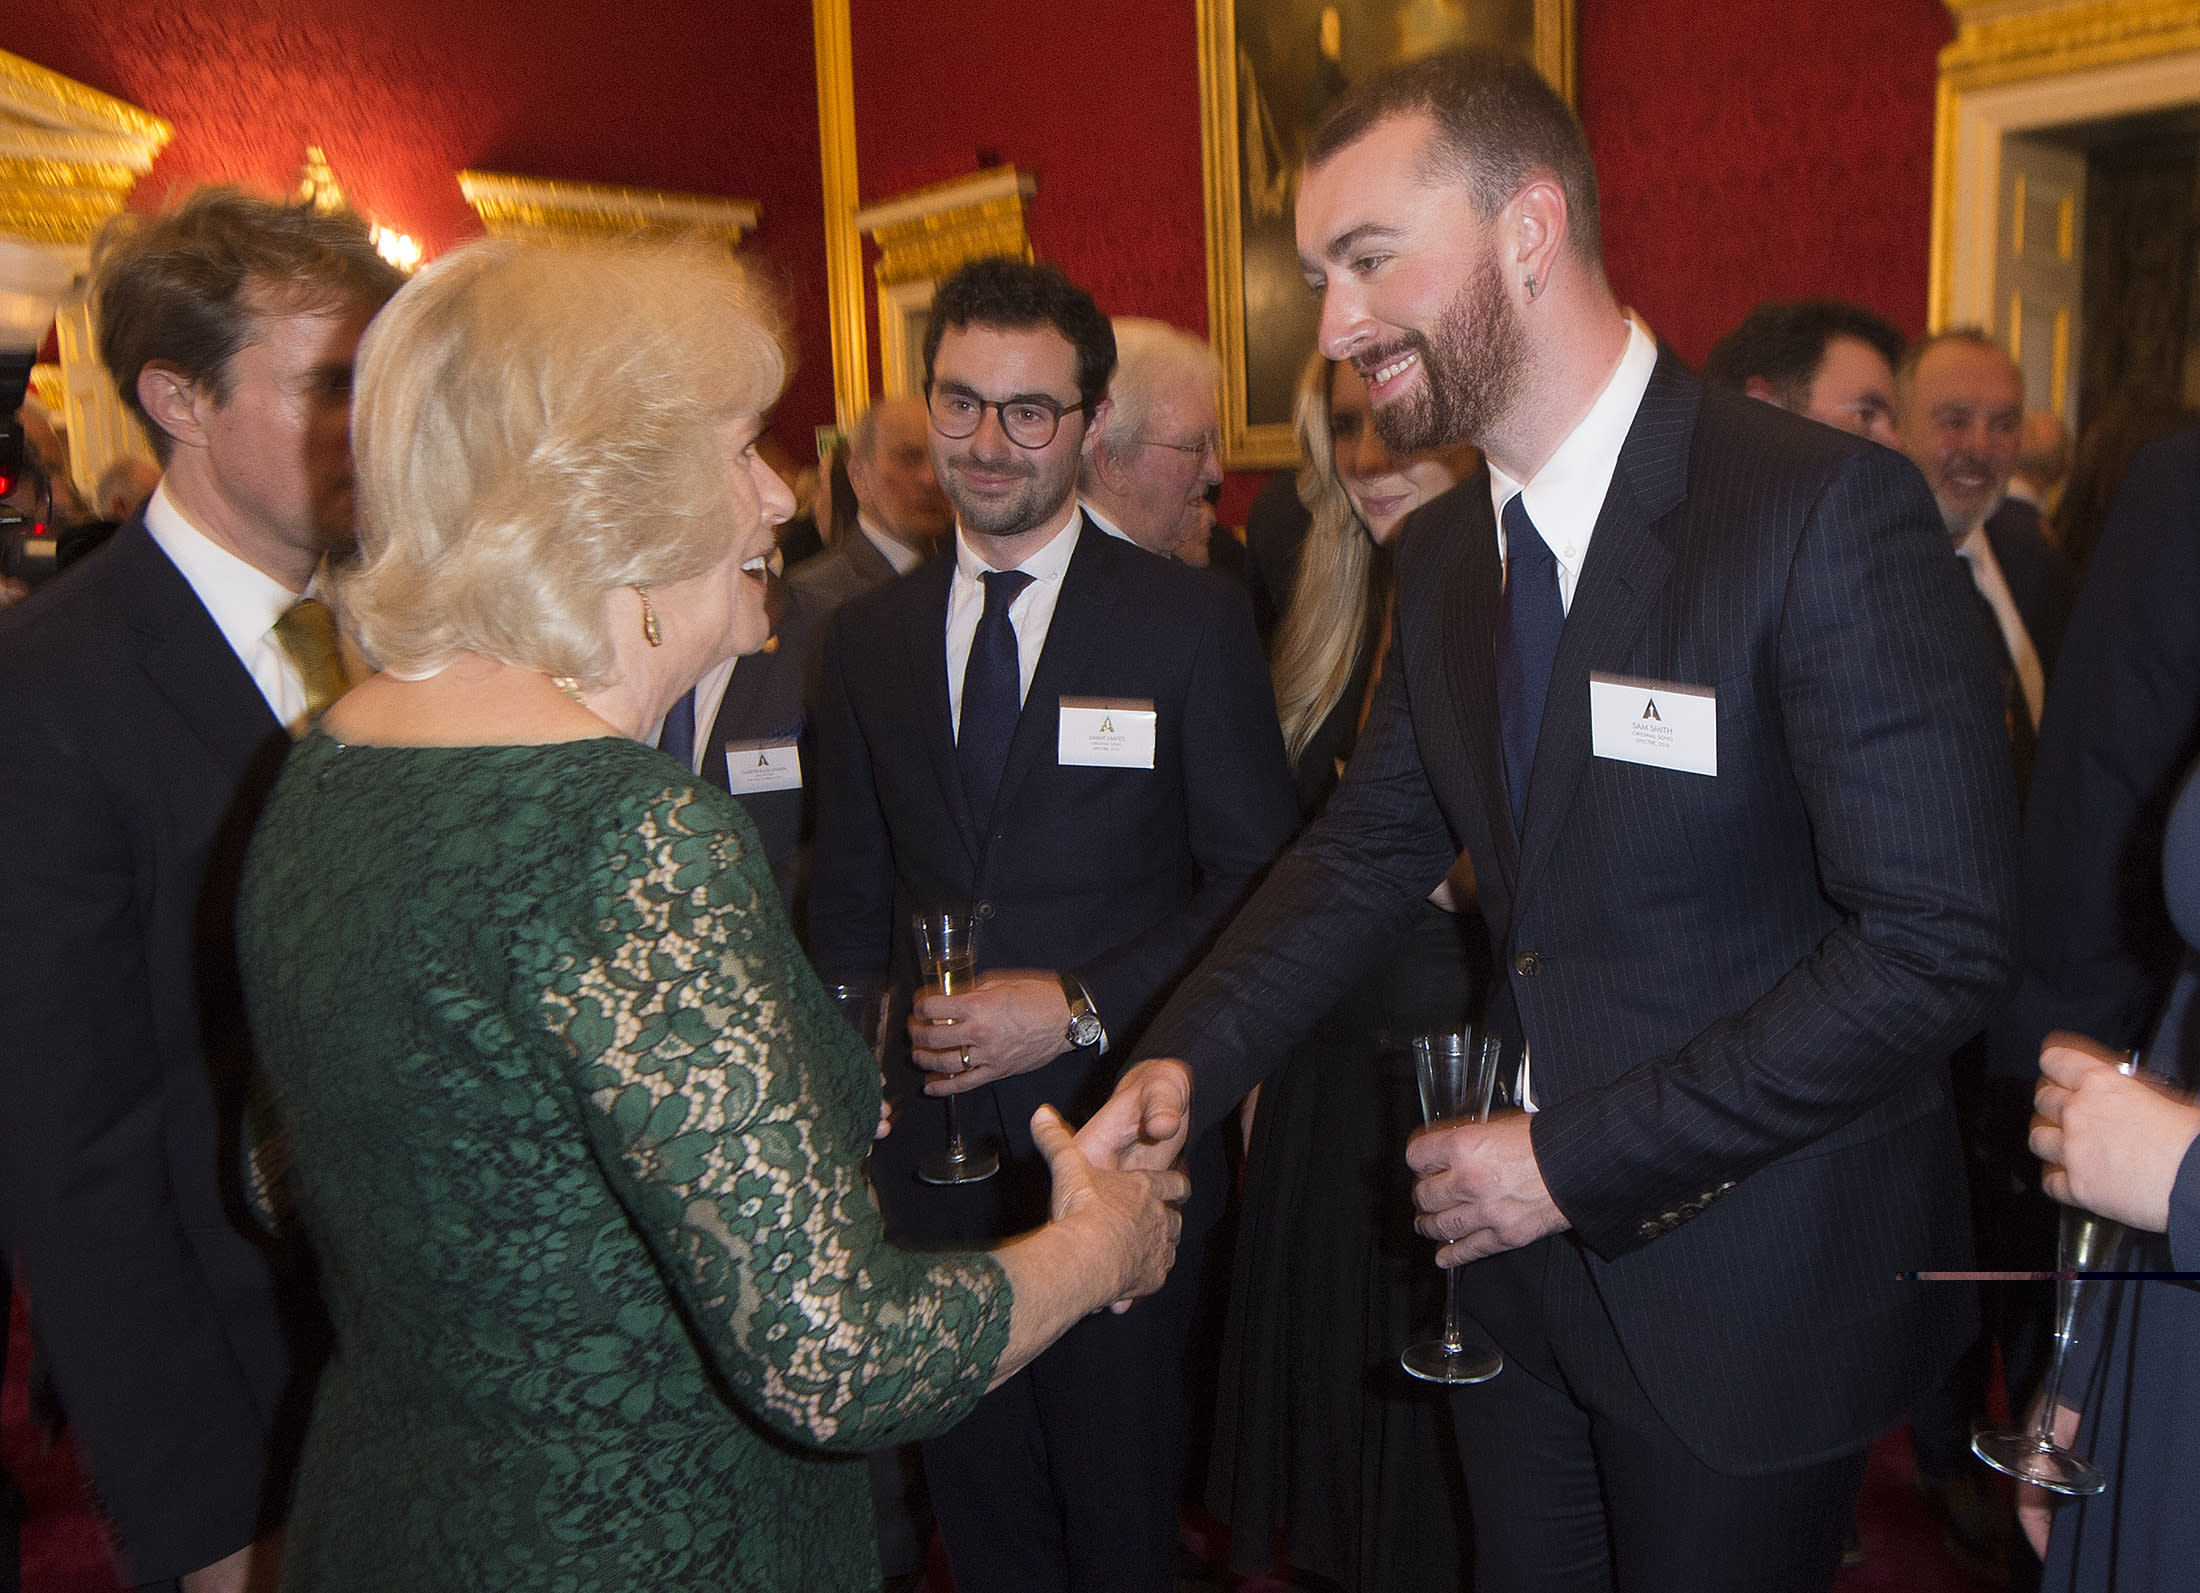 Sam Smith (right) greets the Duchess of Cornwall during a reception for British Academy Awards winners at St James's Palace in London.